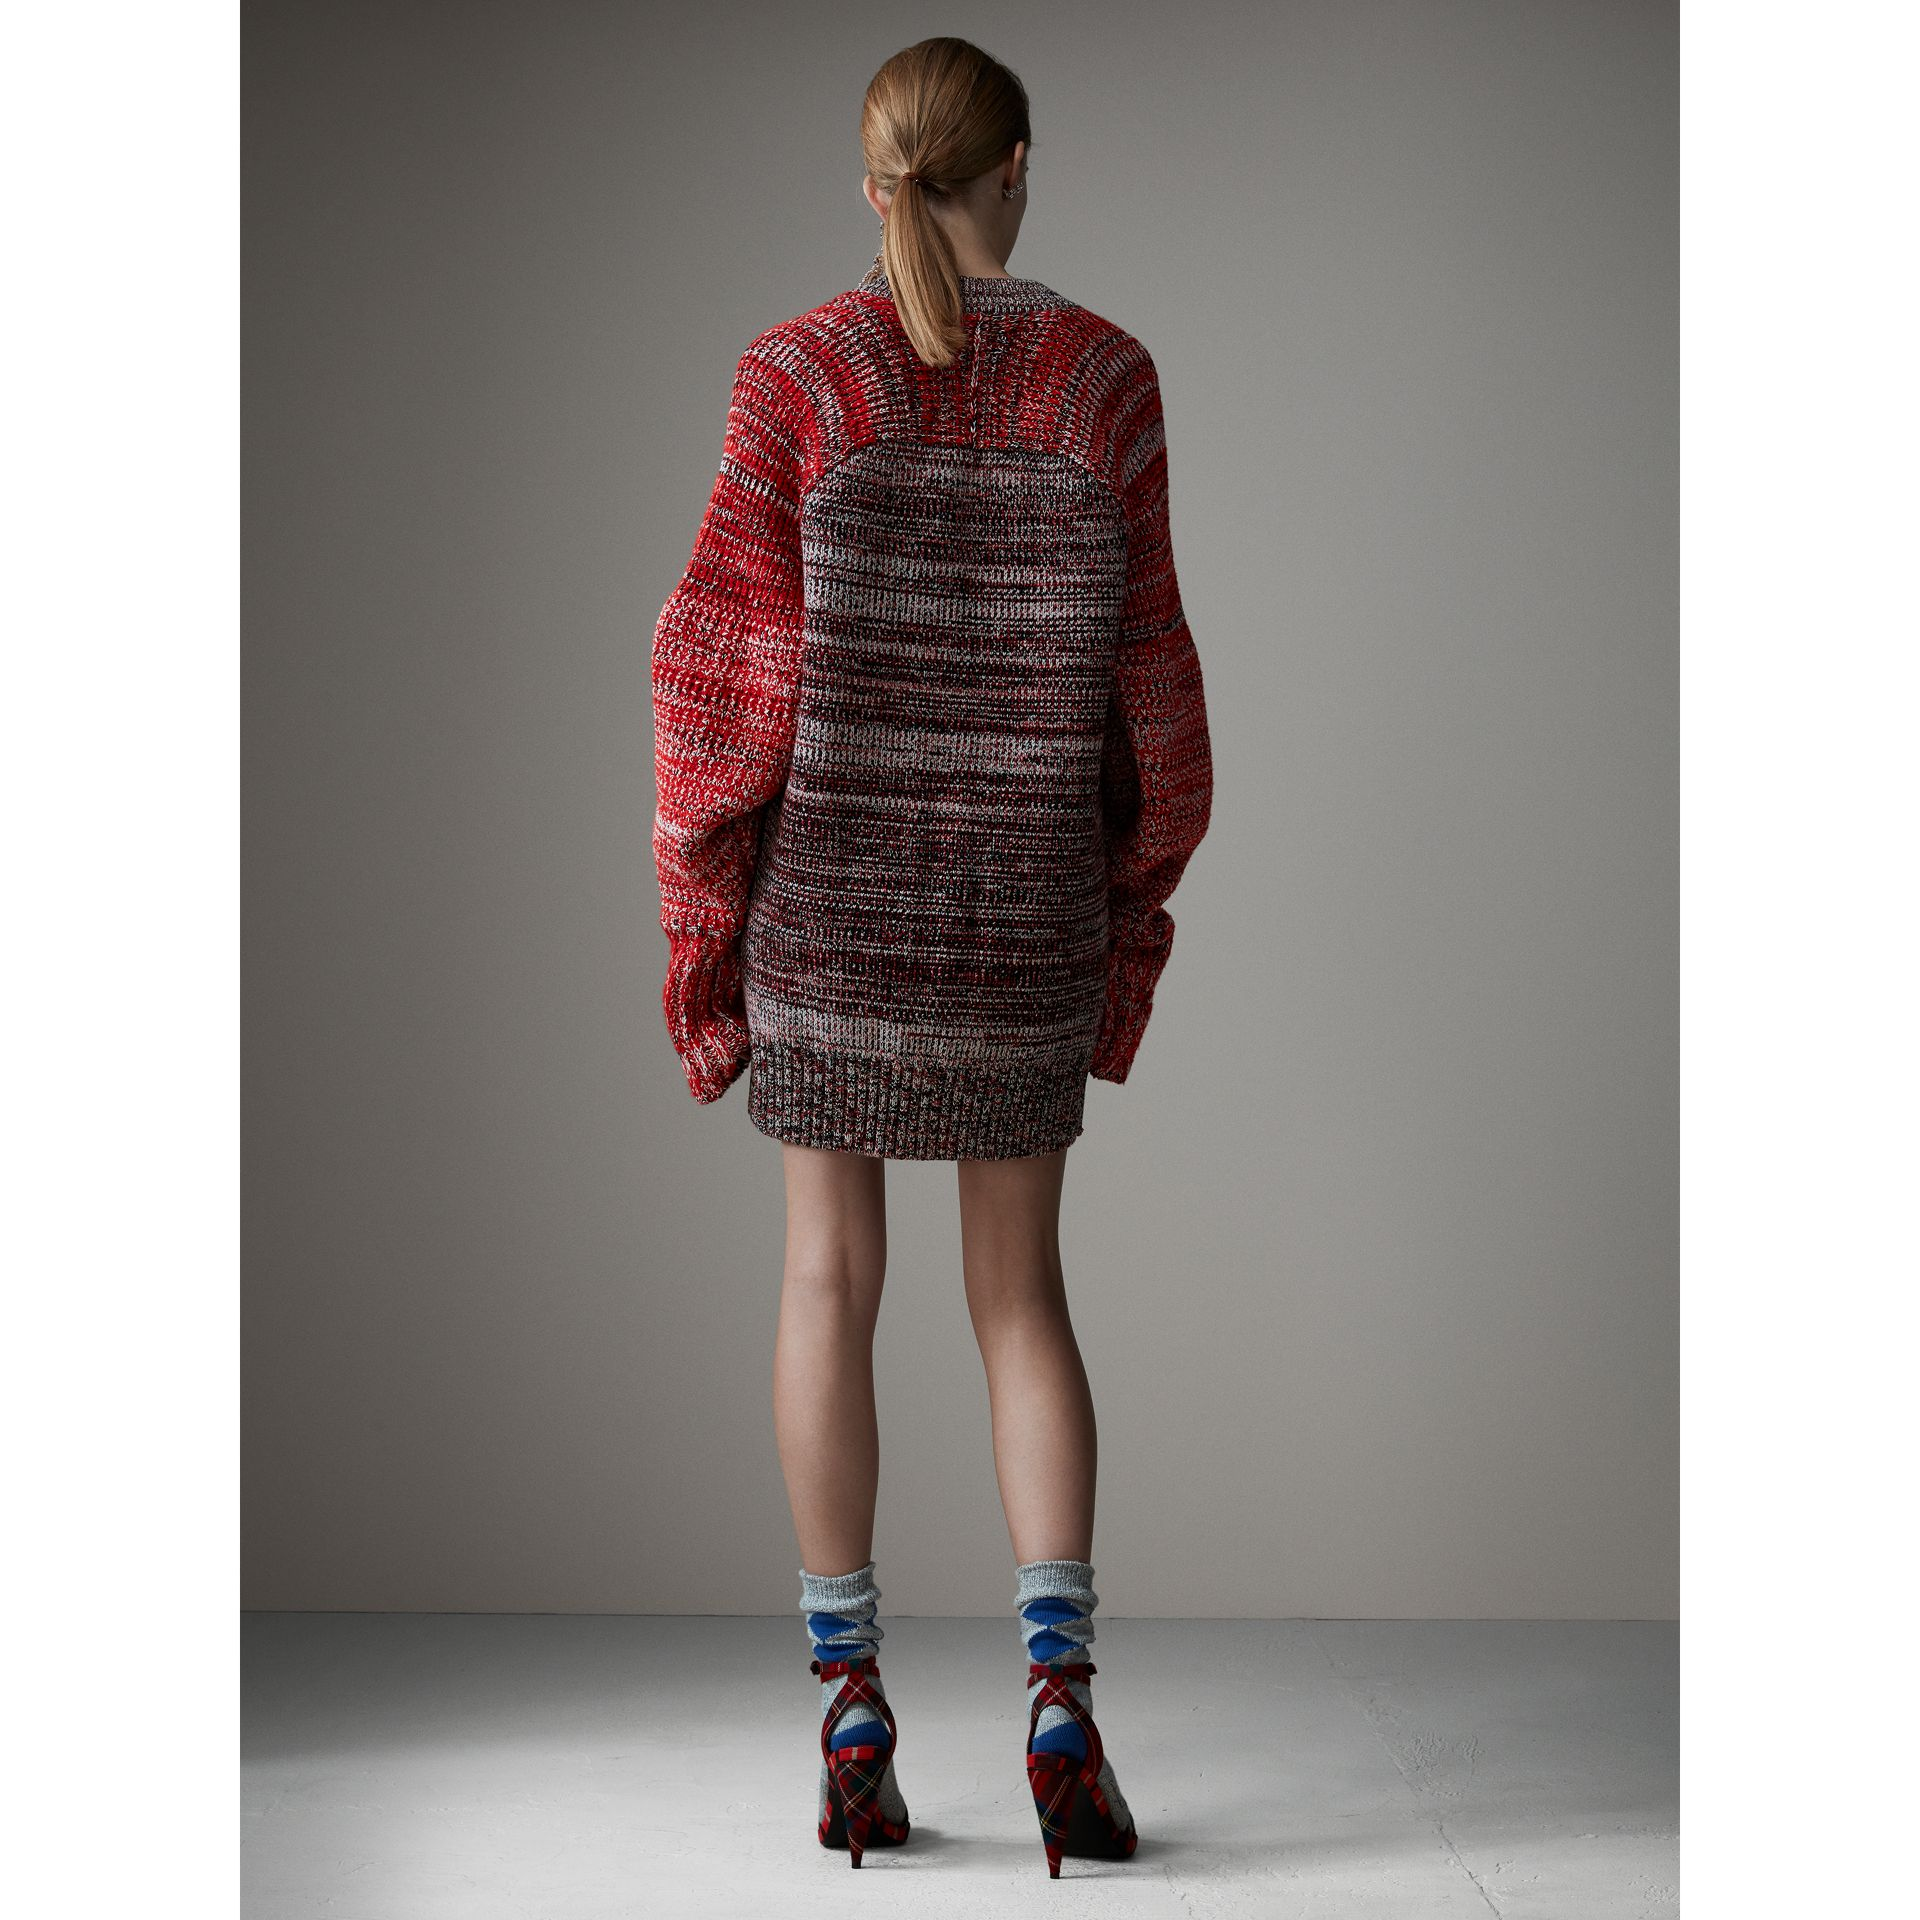 Cashmere Wool Blend Mouliné Oversized Cardigan in Red/black - Women | Burberry Australia - gallery image 2